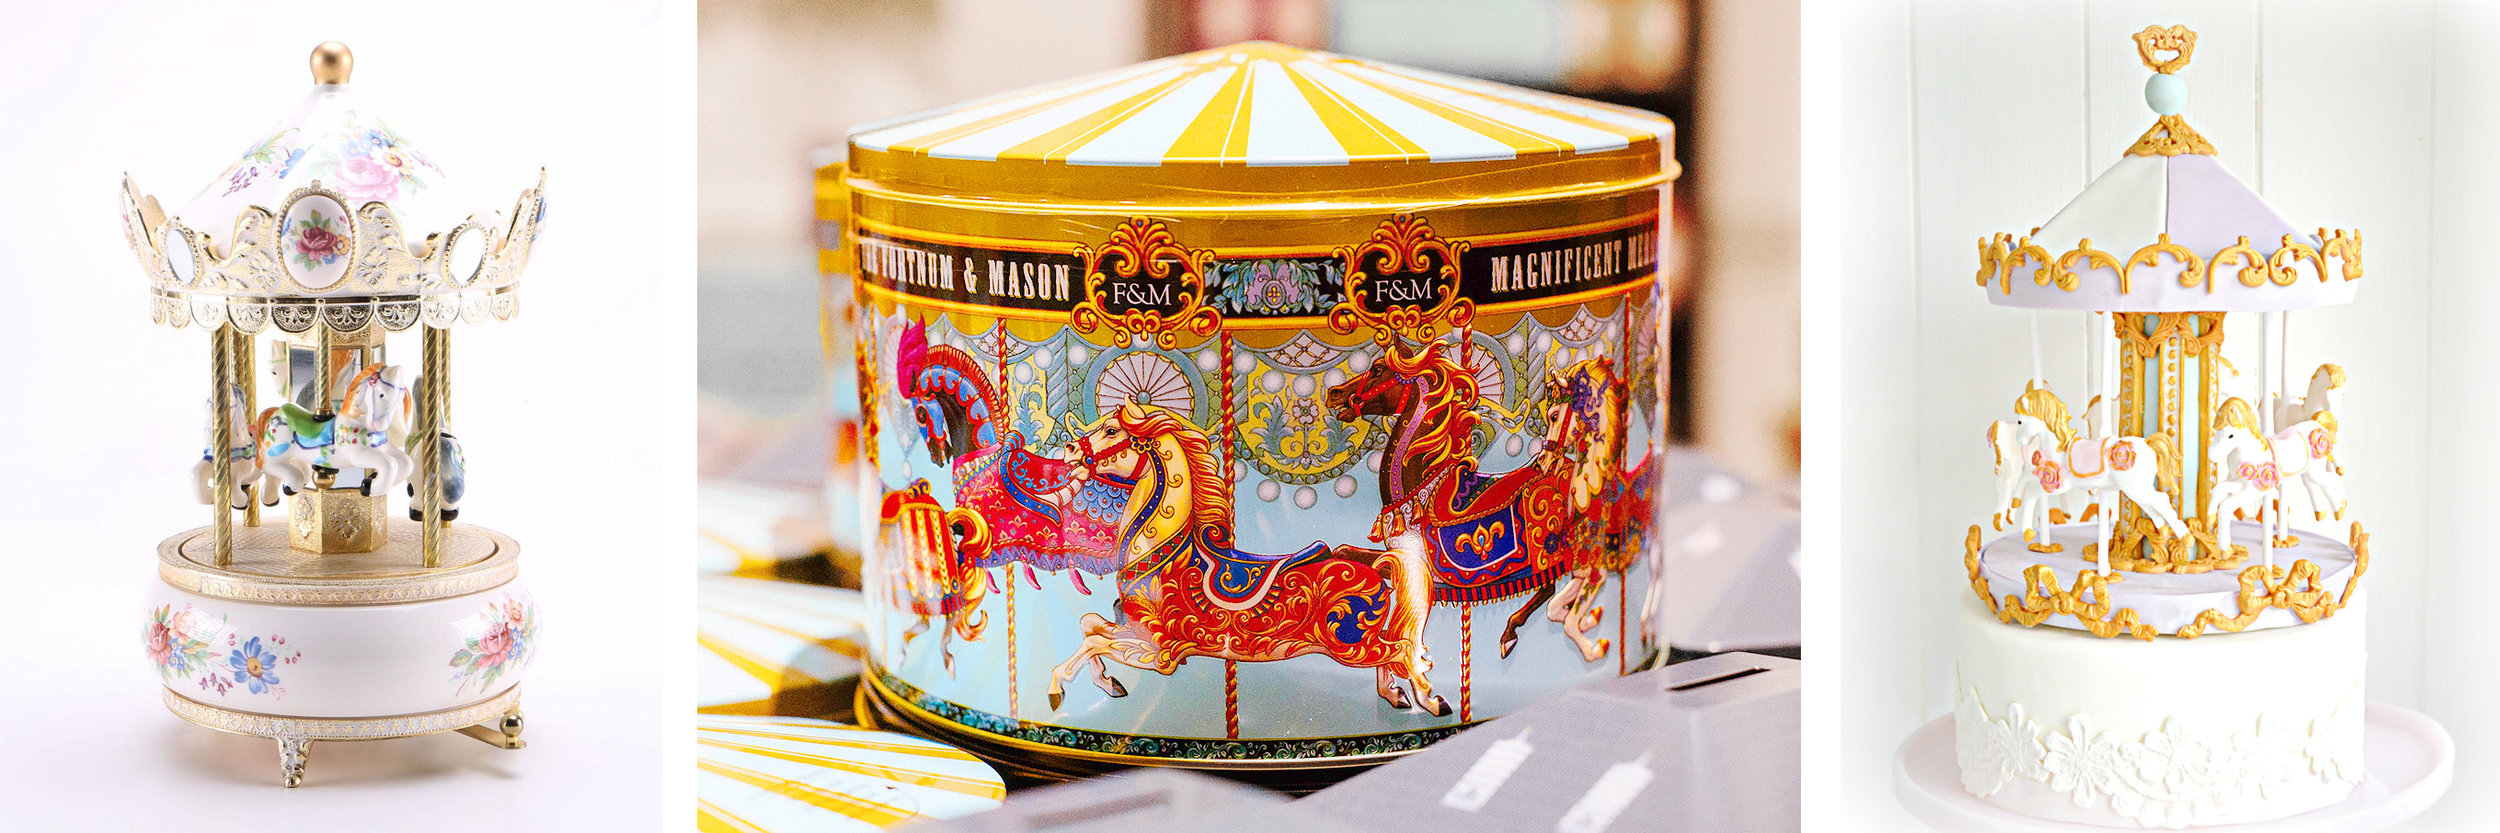 A music box, a Fortnum & Mason biscuit tin, and a cake from  Chérie Kelly